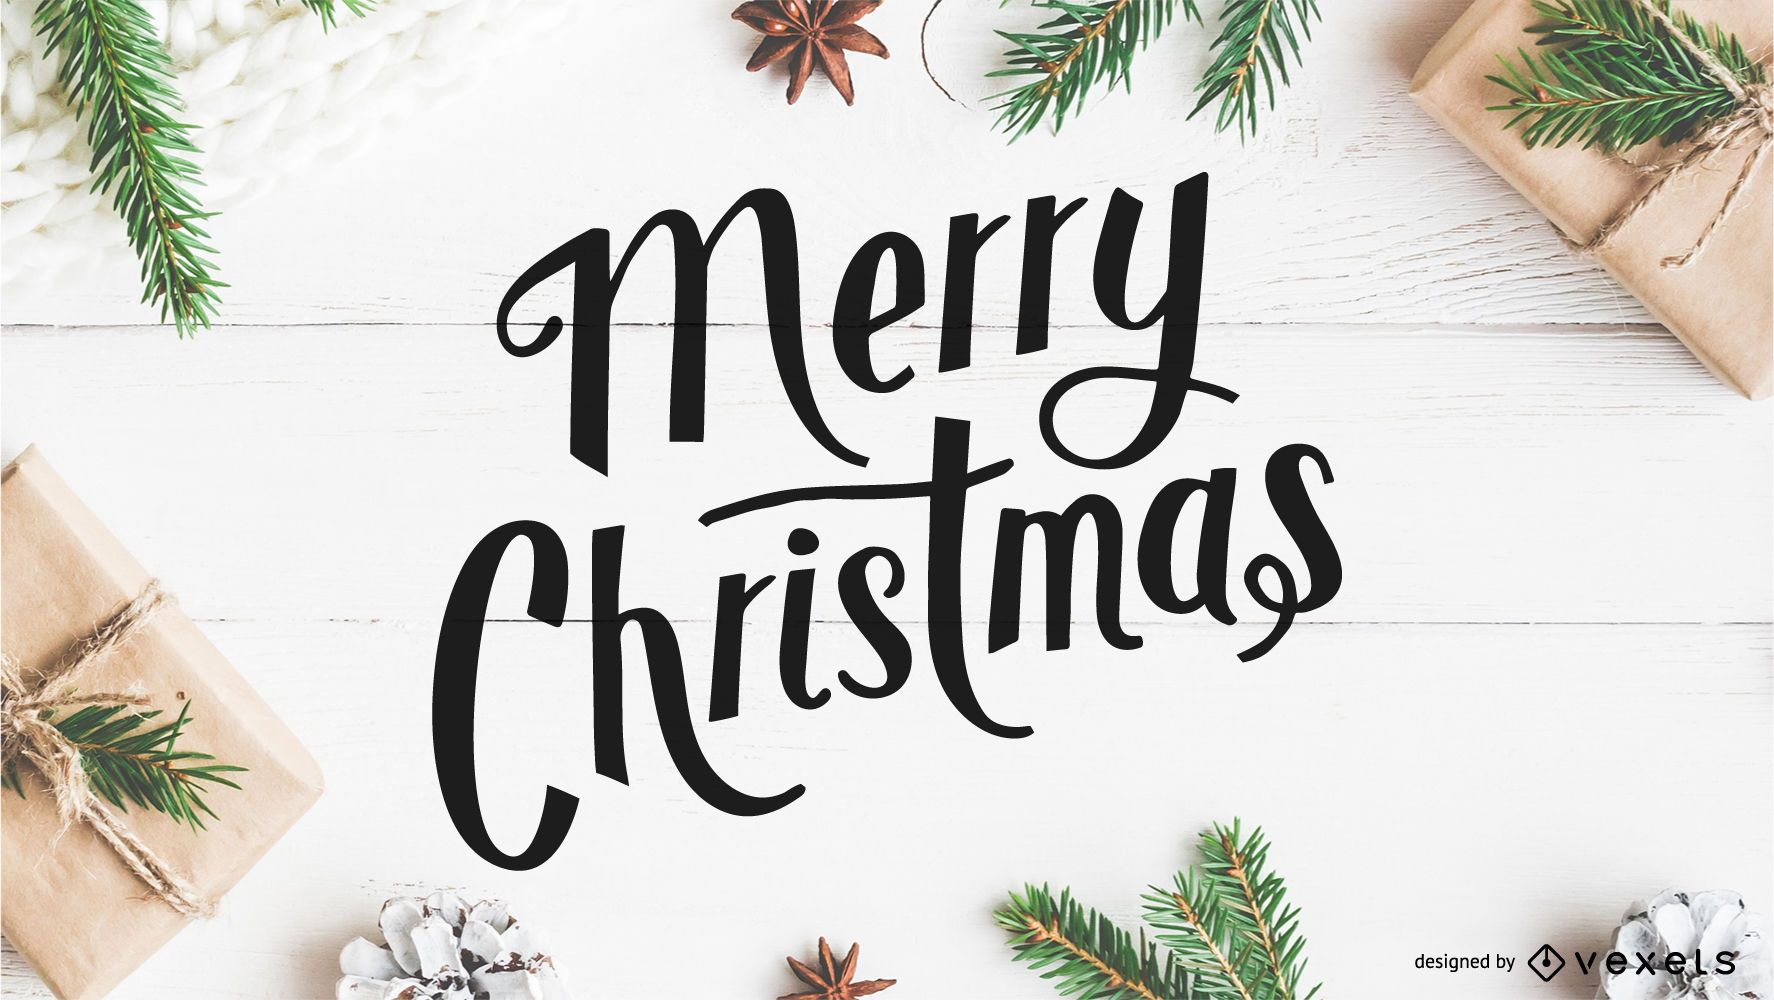 Merry Christmas artistic lettering